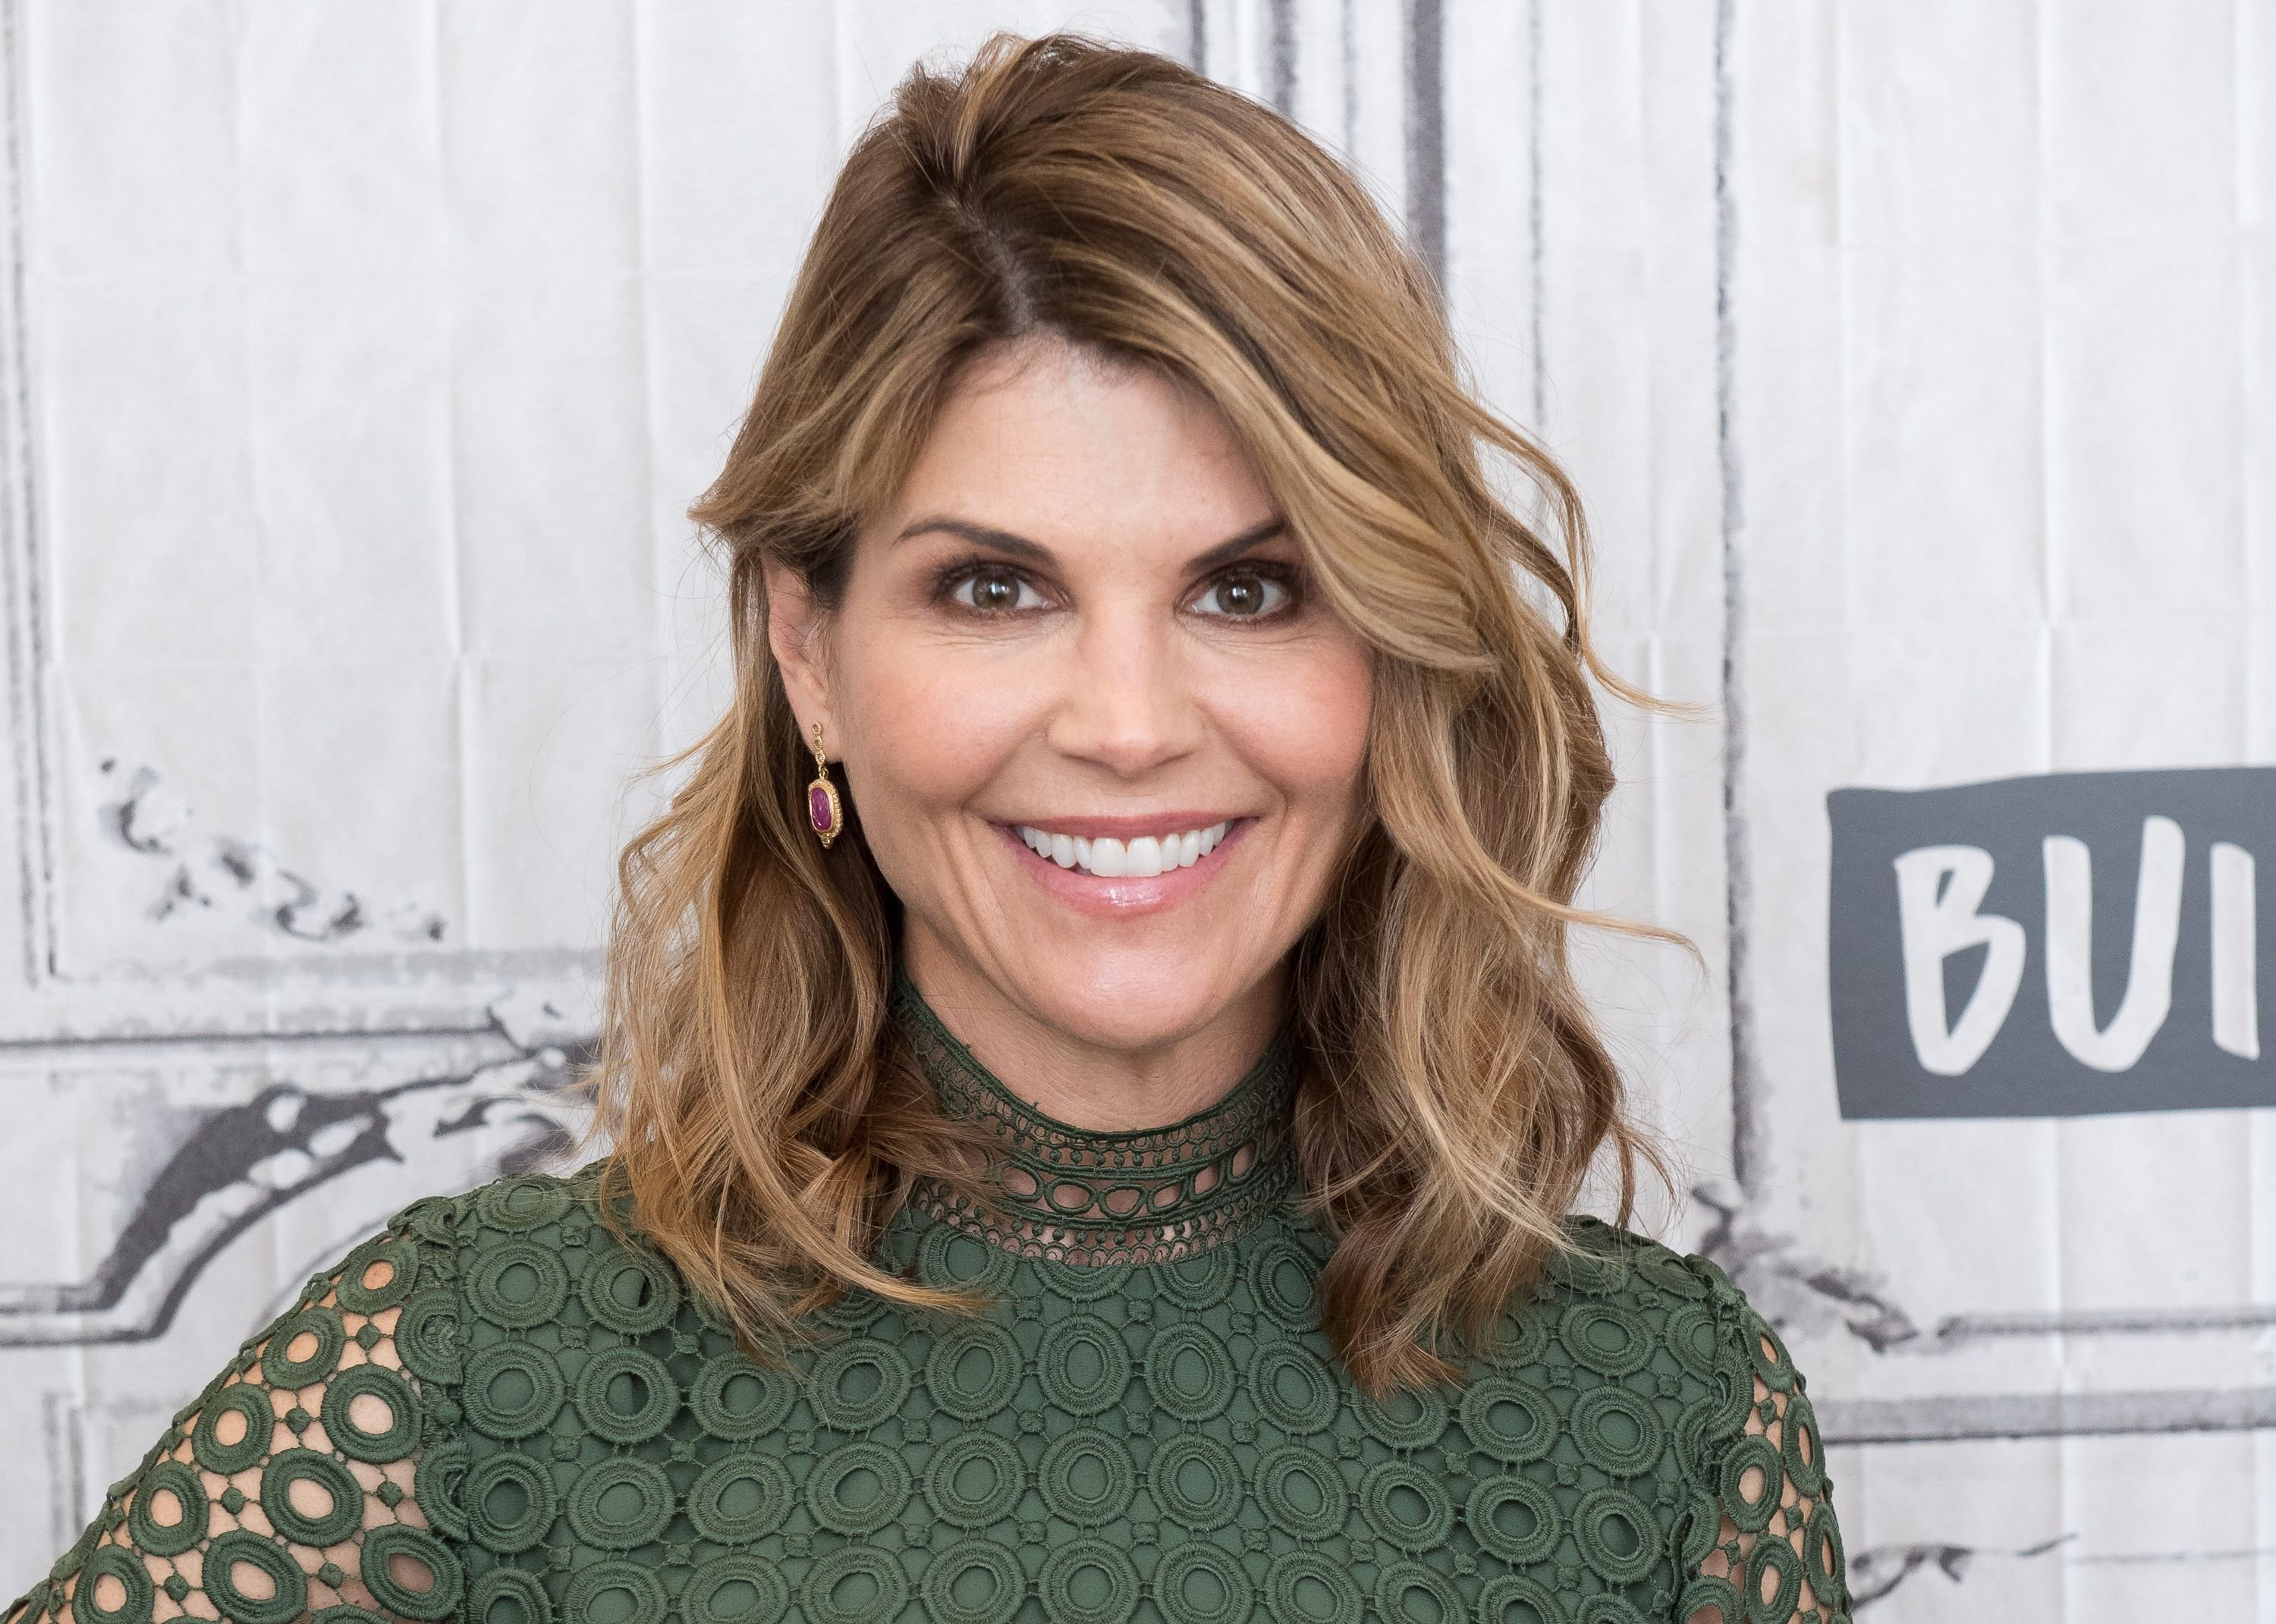 Lori Loughlin visits Build Series at Build Studio on February 15, 2018 | Photo: Getty Images